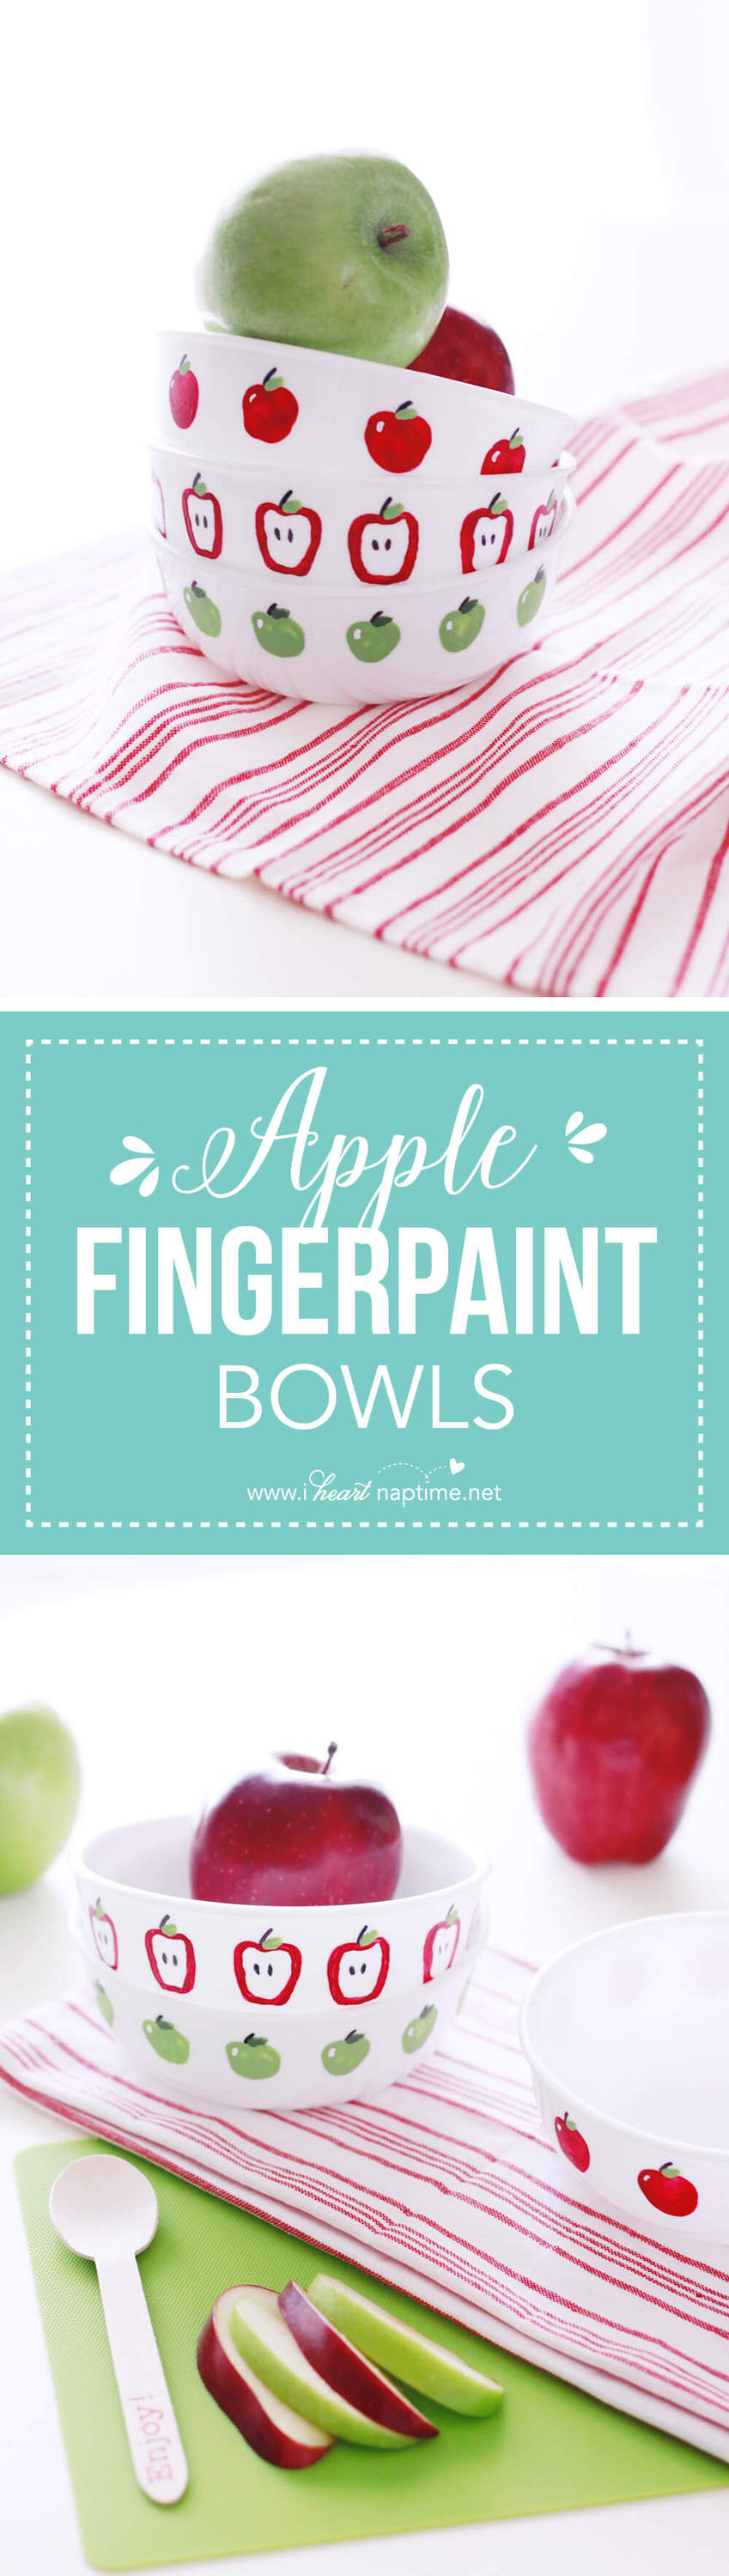 Apple Fingerpaint Bowls... fun finger paint DIY that you and your kids can enjoy making together! Makes a wonderful teacher gift or autumn decoration for your home.